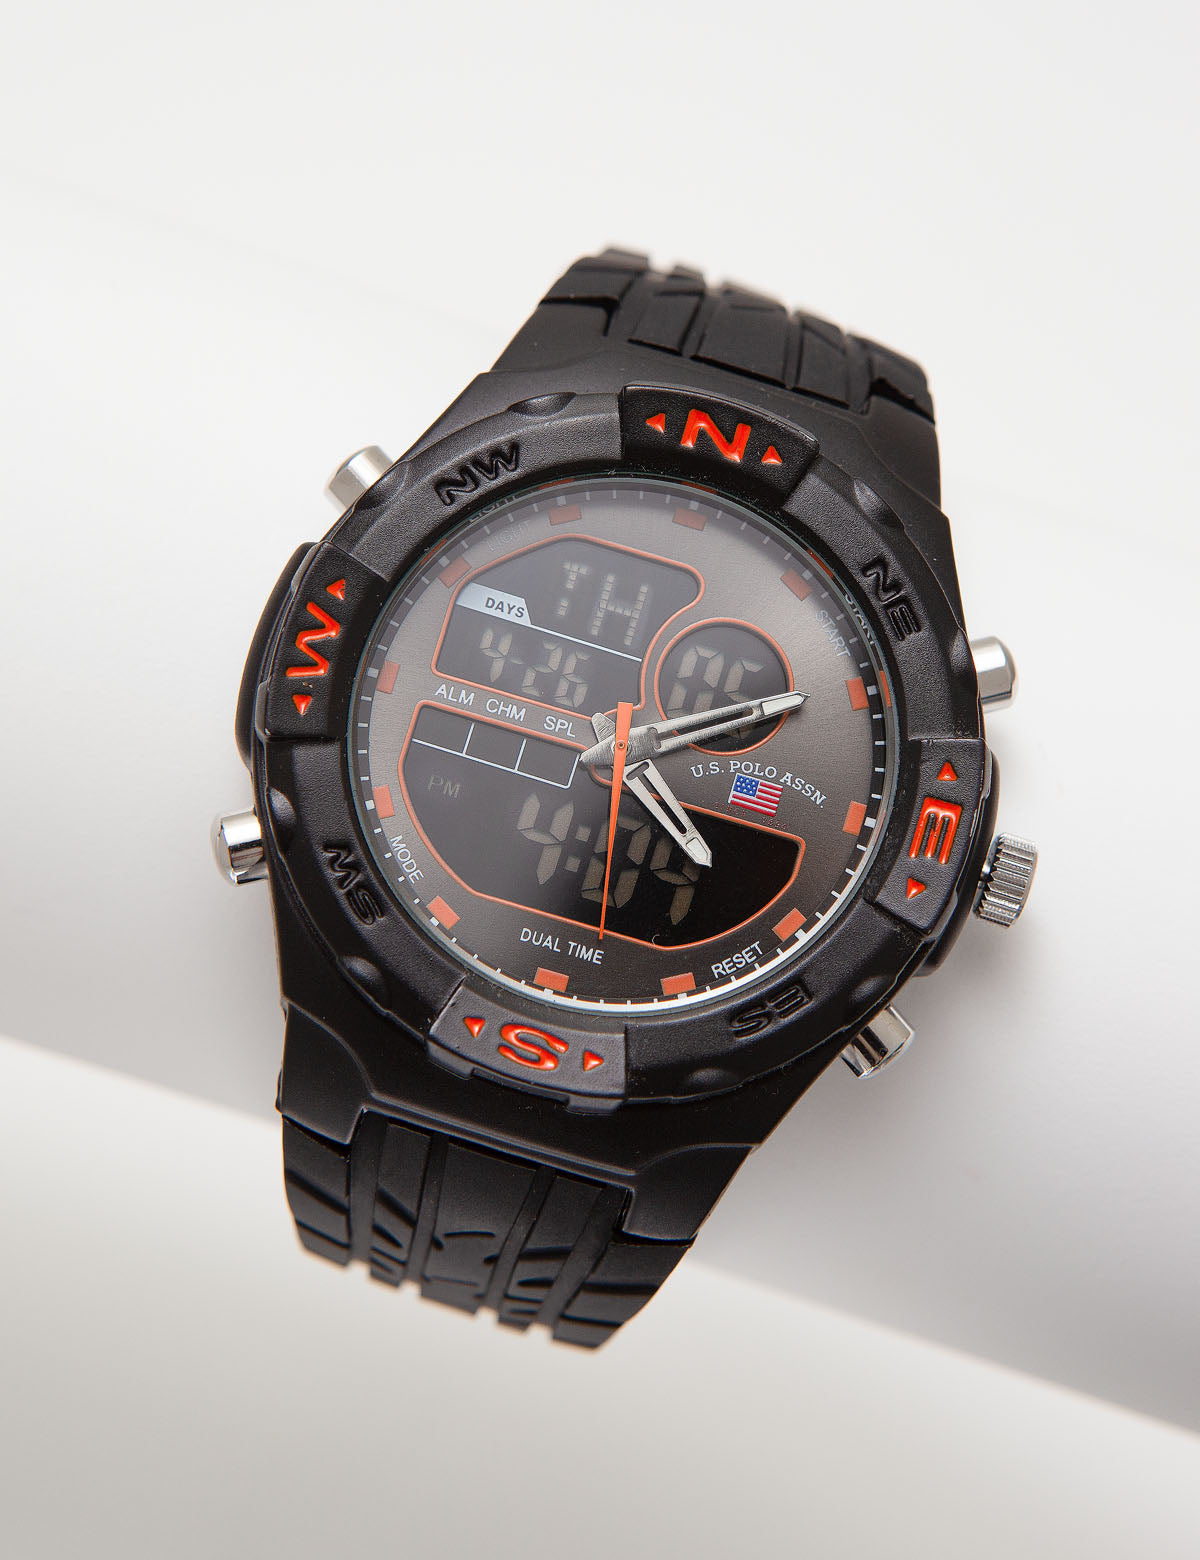 Analog-Digital Sports Watch - U.S. Polo Assn.